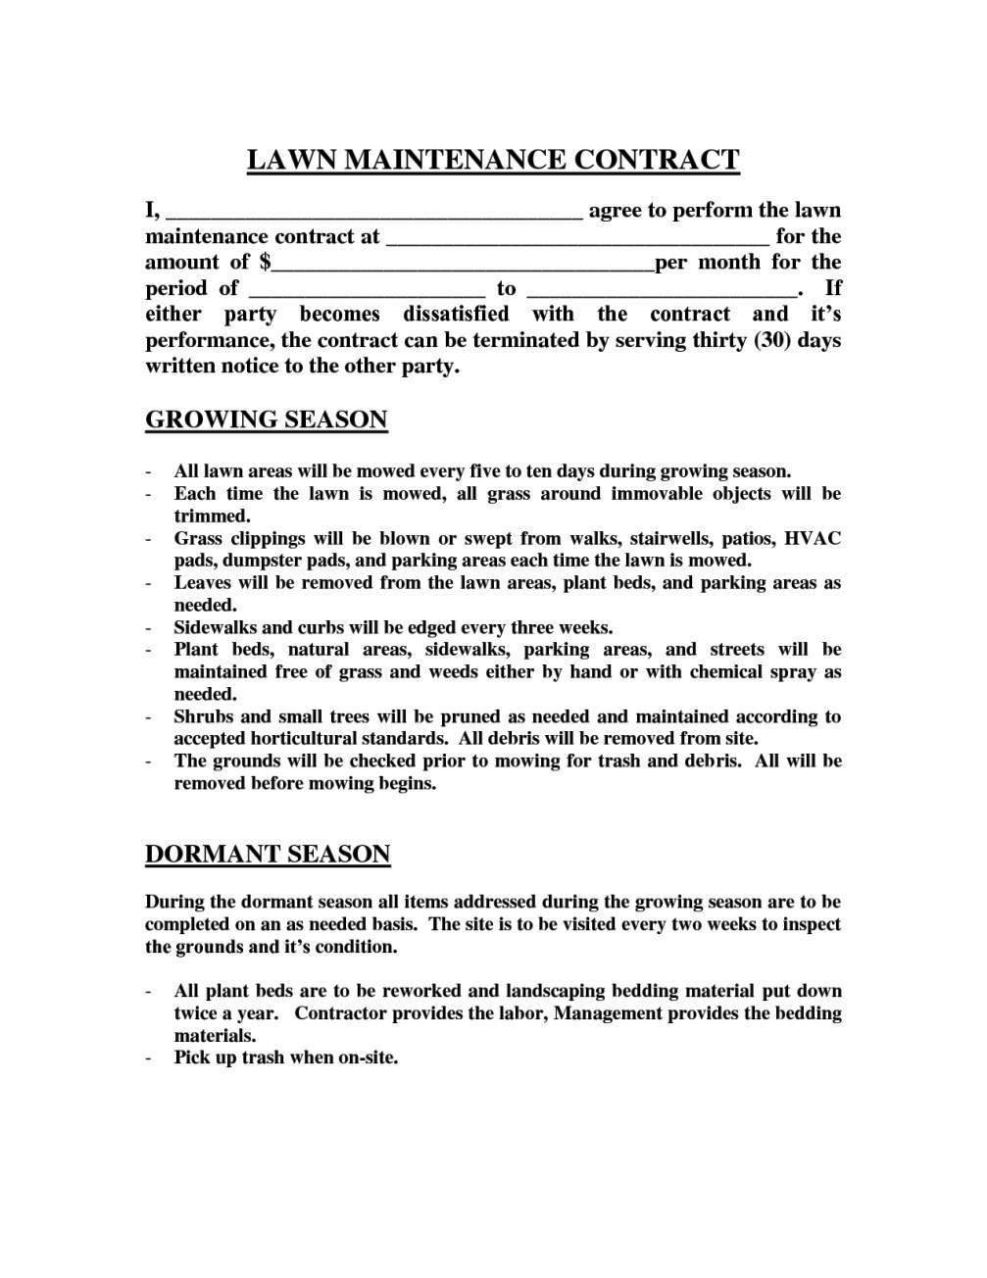 landscape maintenance contract template - sampletemplatess